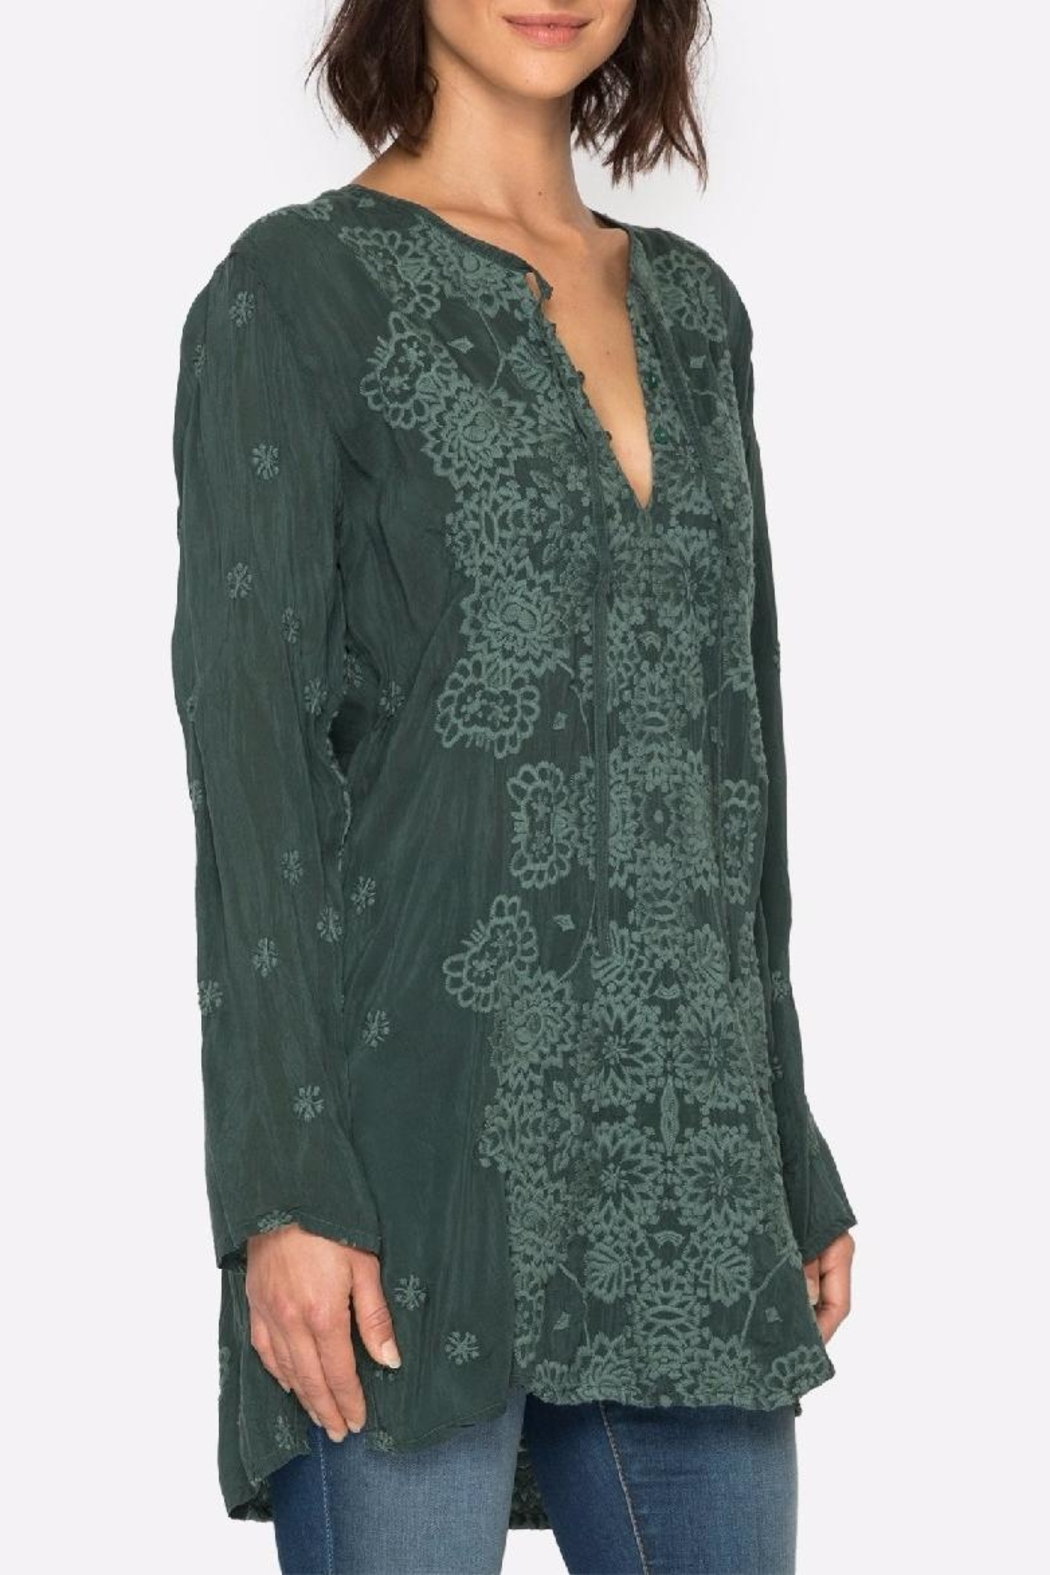 Johnny Was Stars Popover Tunic Top - Main Image